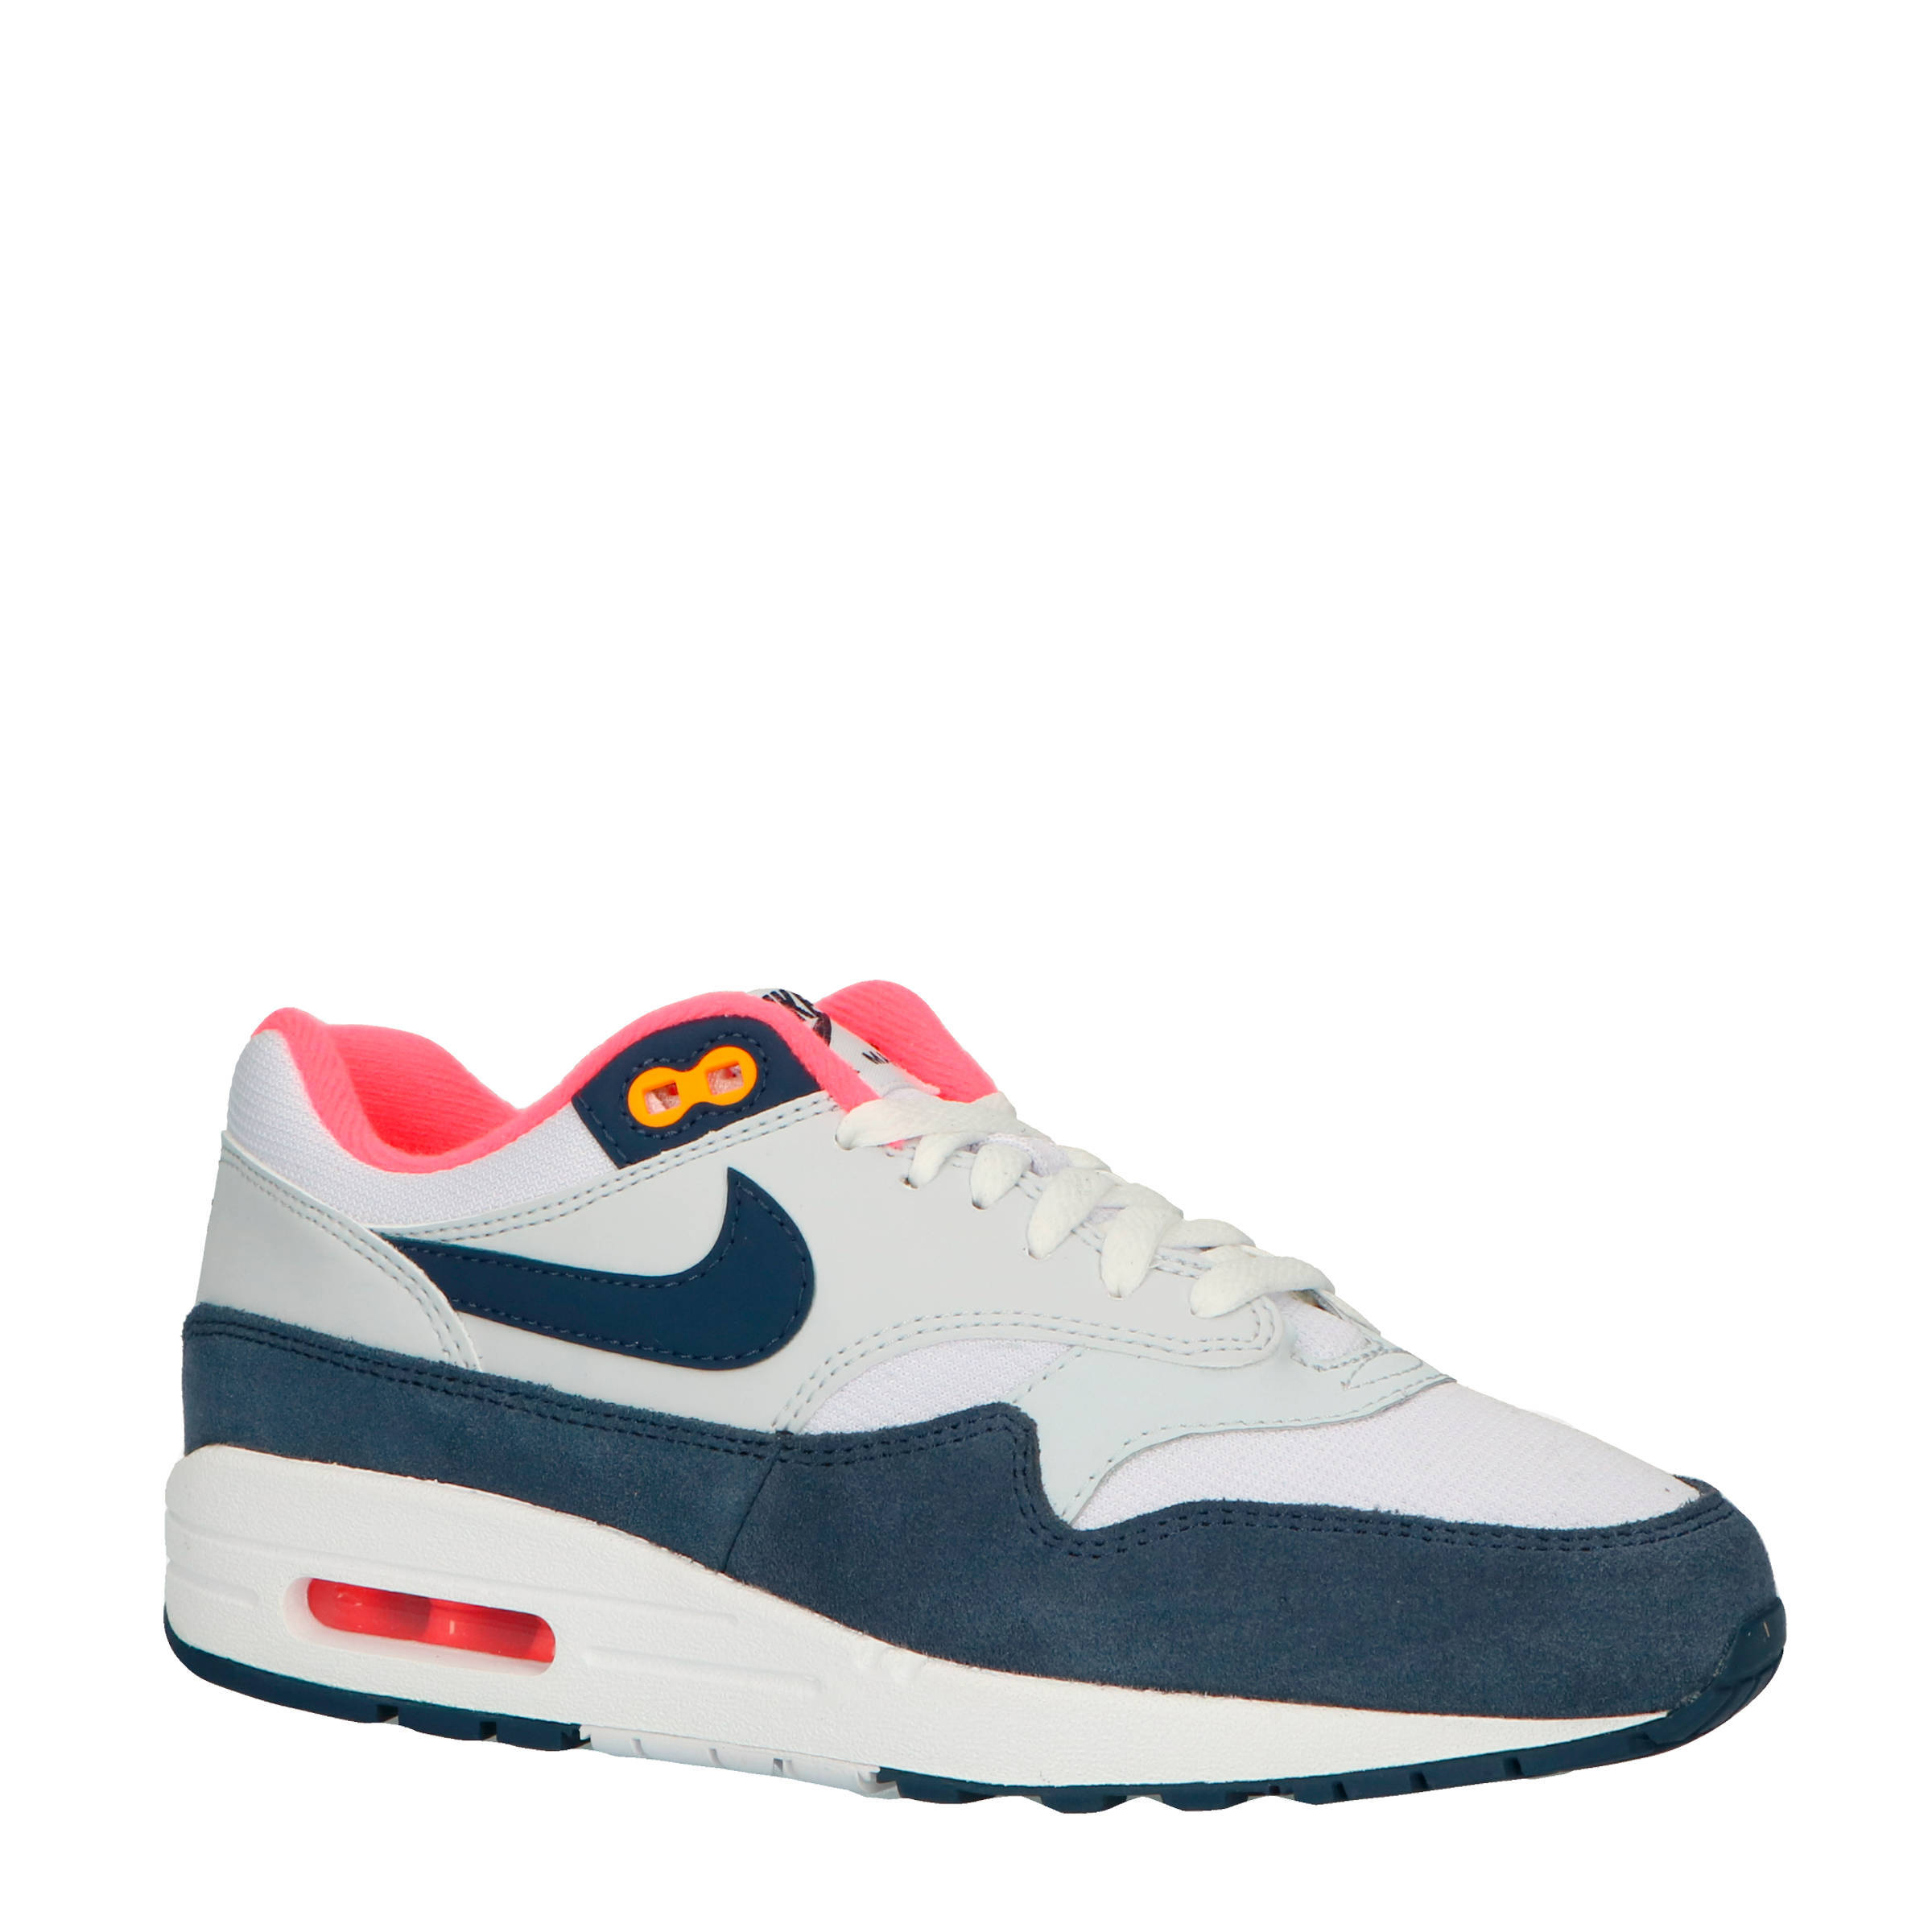 nike air max dames wit roze